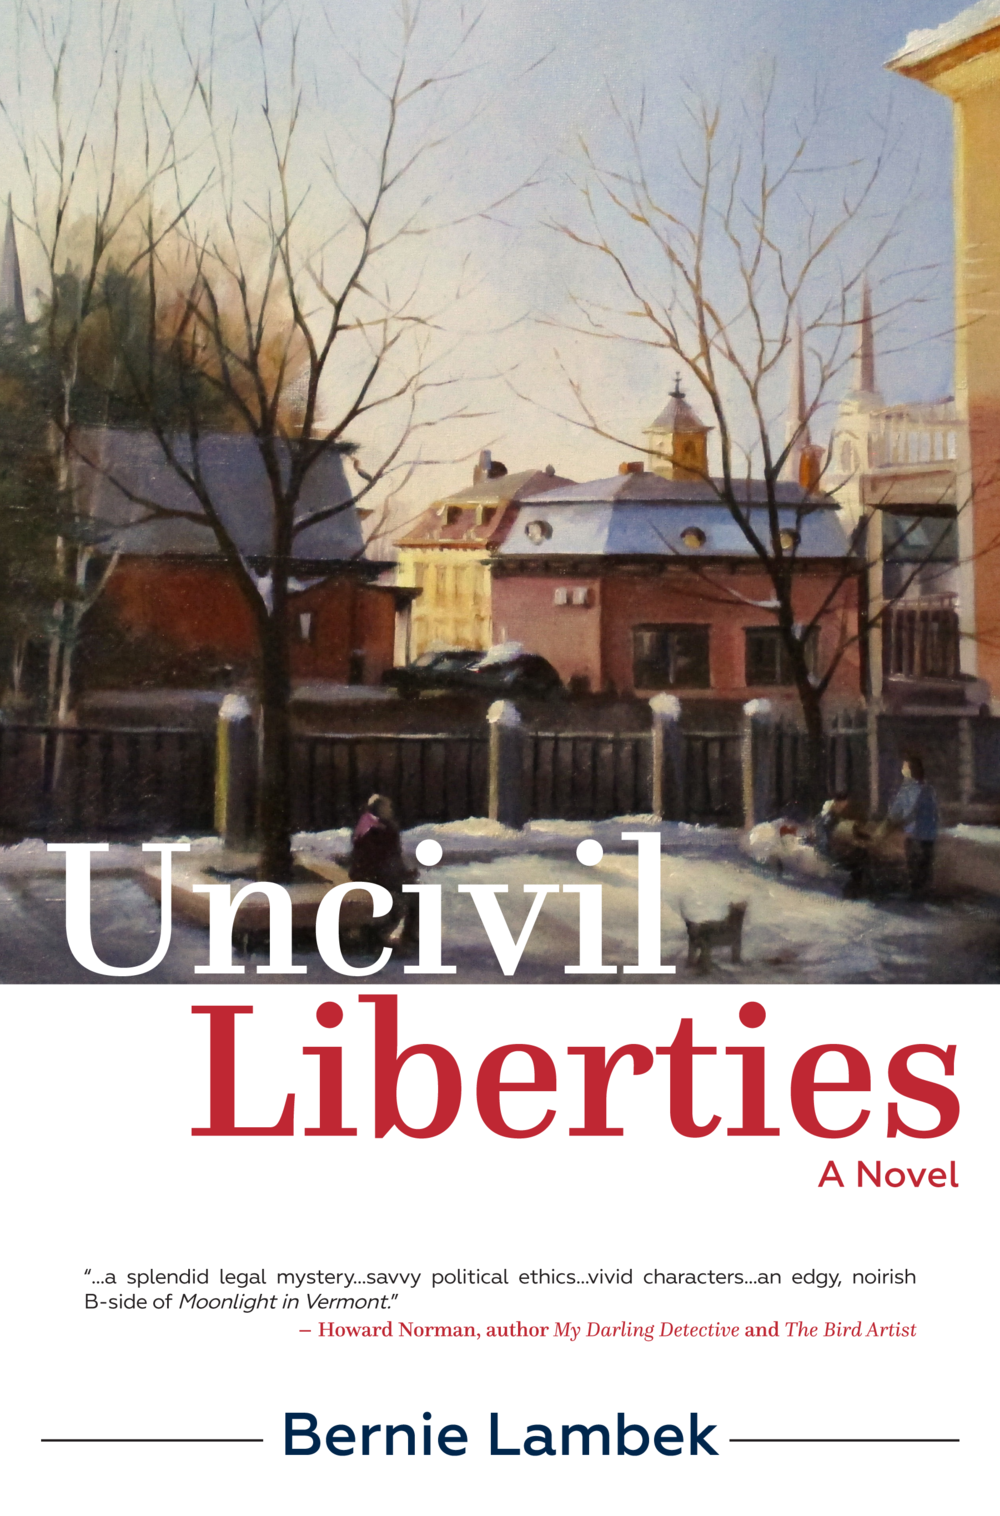 UncivilLiberties-Cover-1.6.18.png